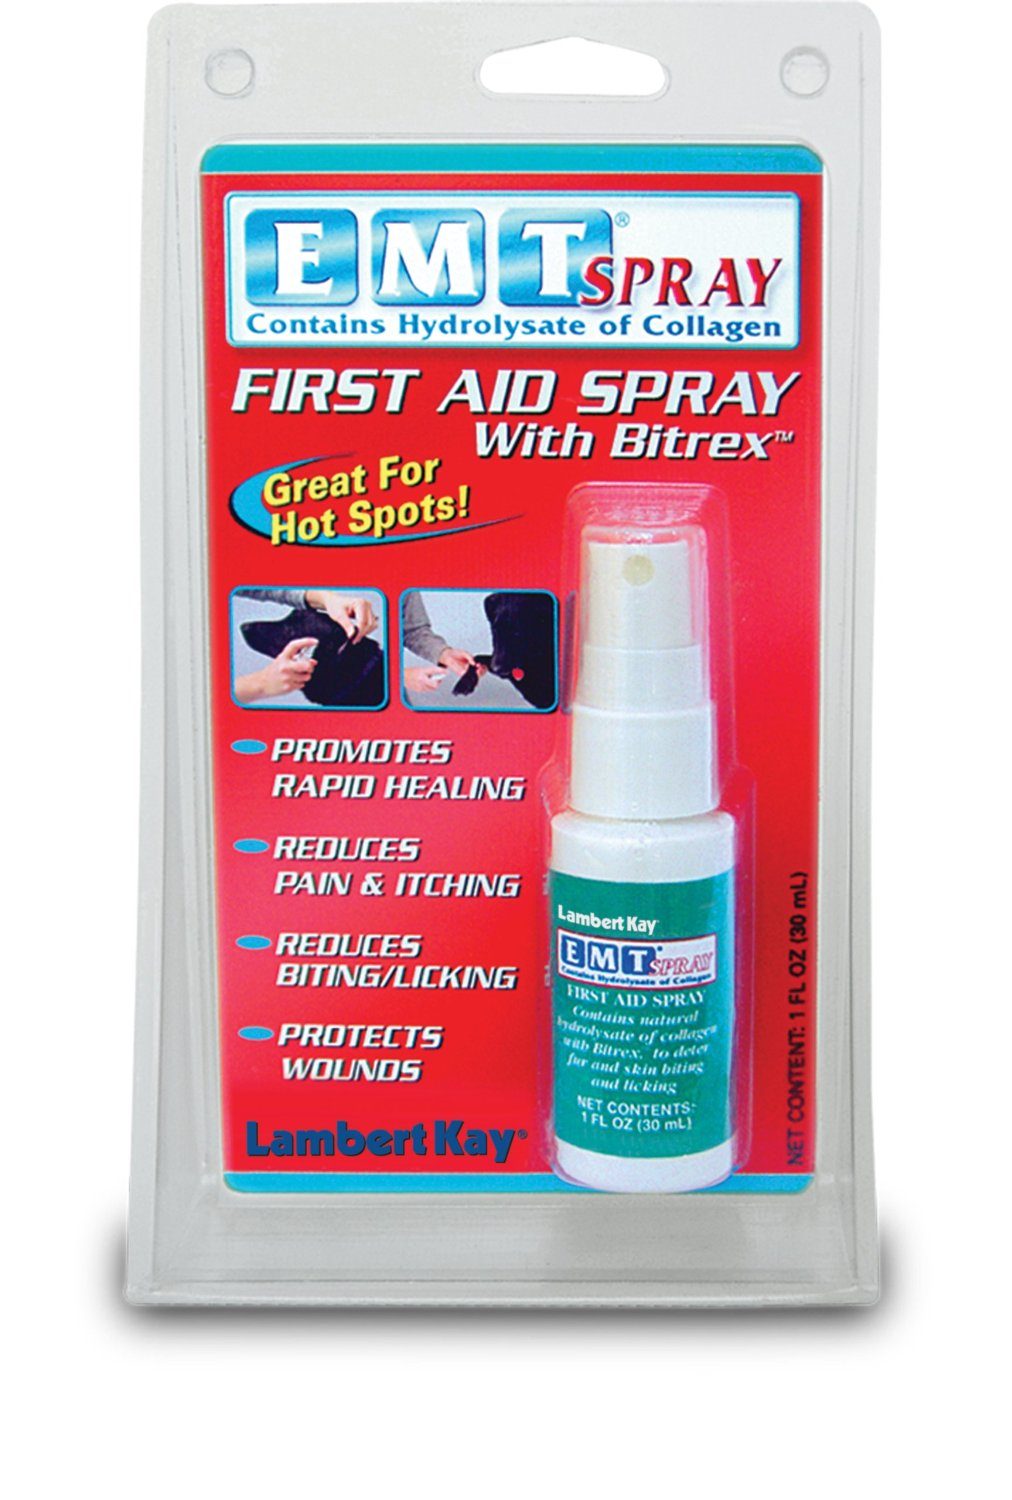 Trophy EMT Spray for Pets